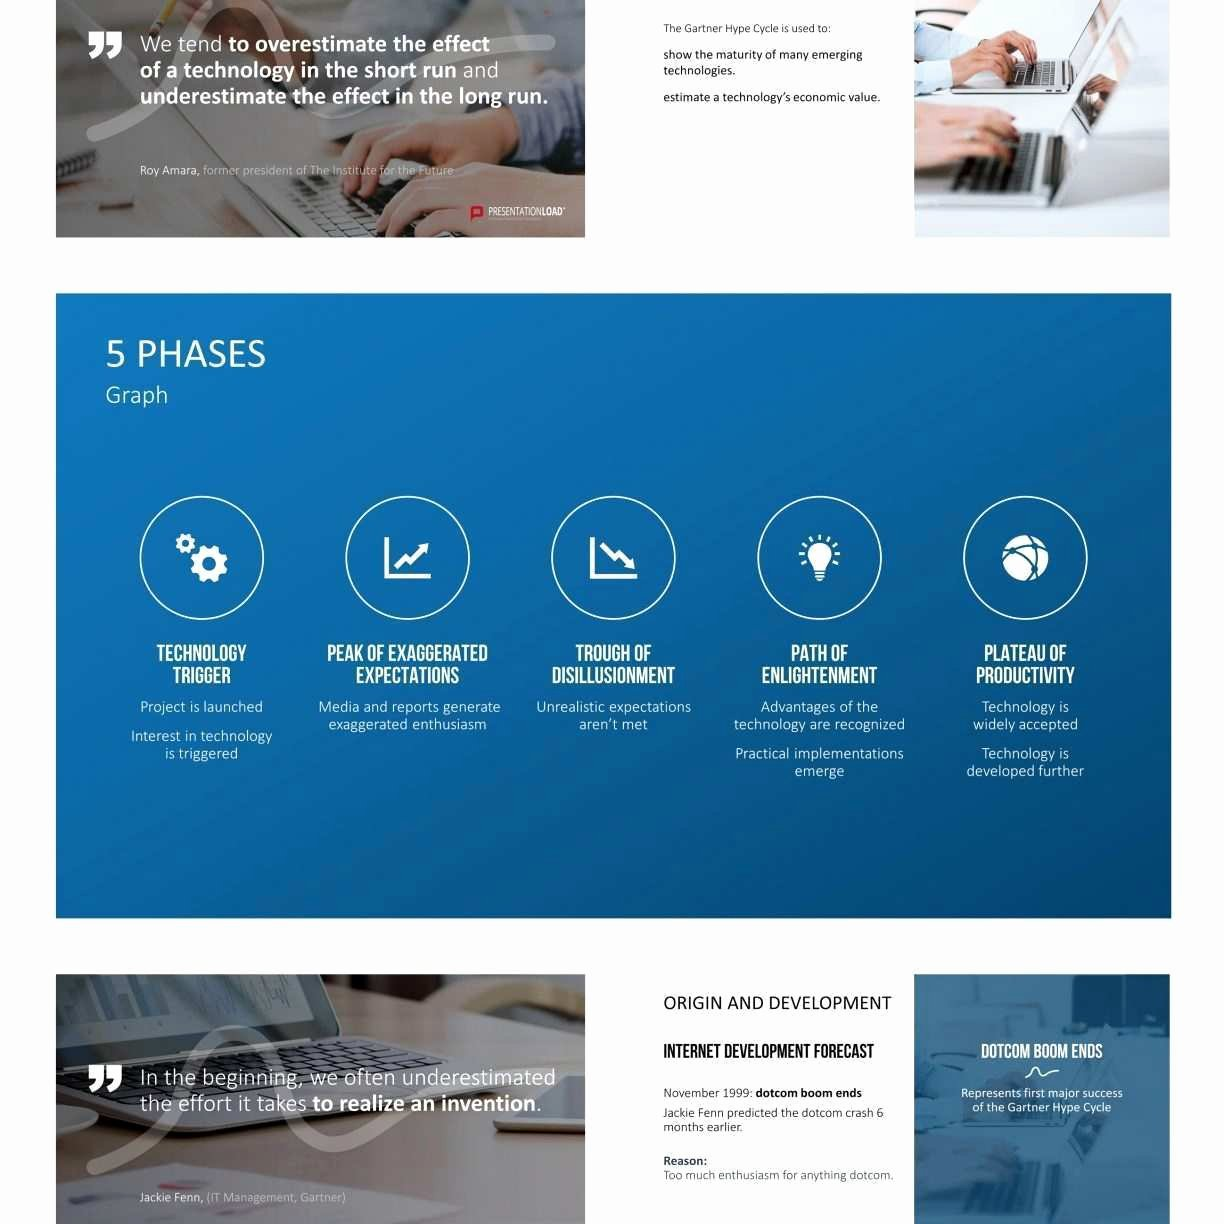 Powerpoint Business Cards Template Lovely Business Card Templates for Word Free Download New